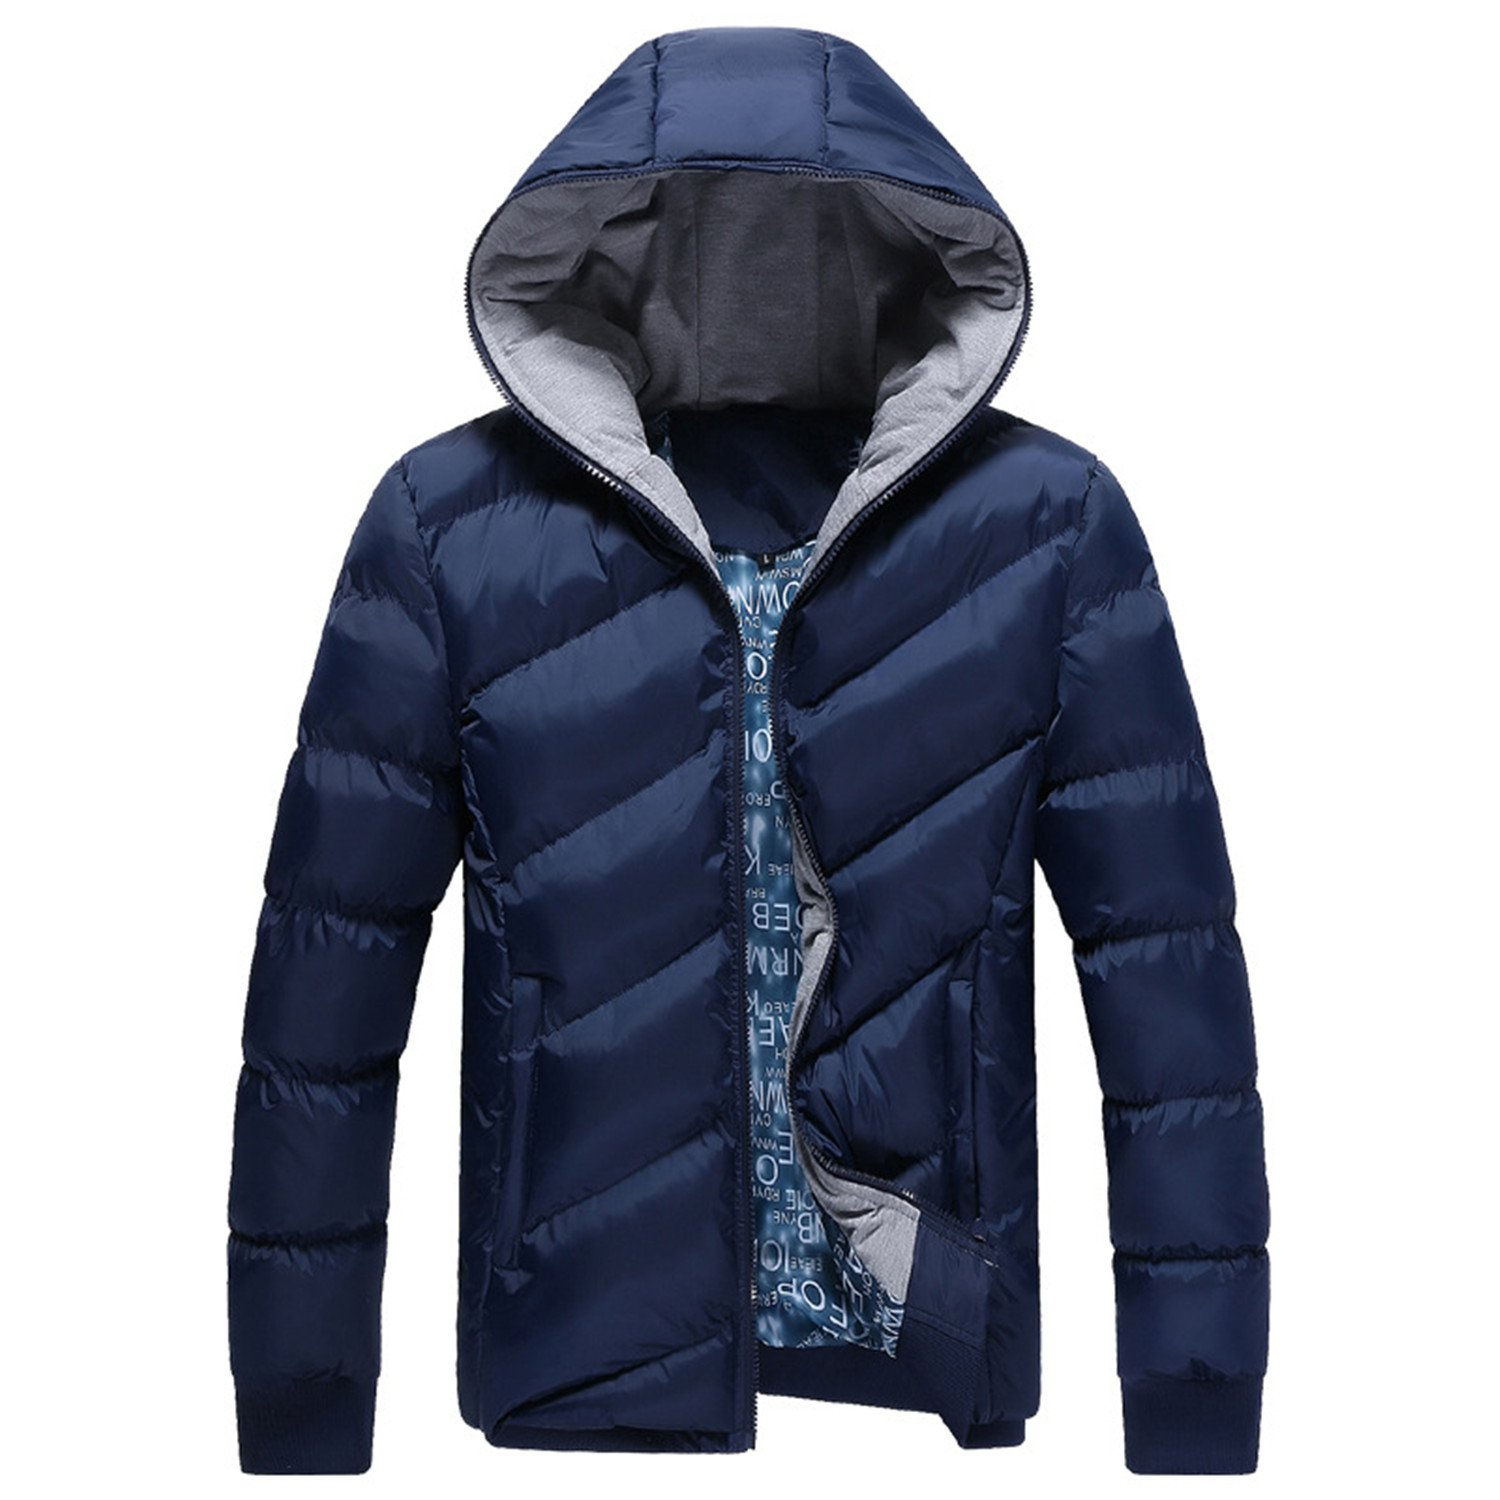 Sonjer New Men Hooded Winter Parkas Coats Superior Zipper Padded Cotton Jackets Male Keep Warm Casual Outwear Light Down Tops